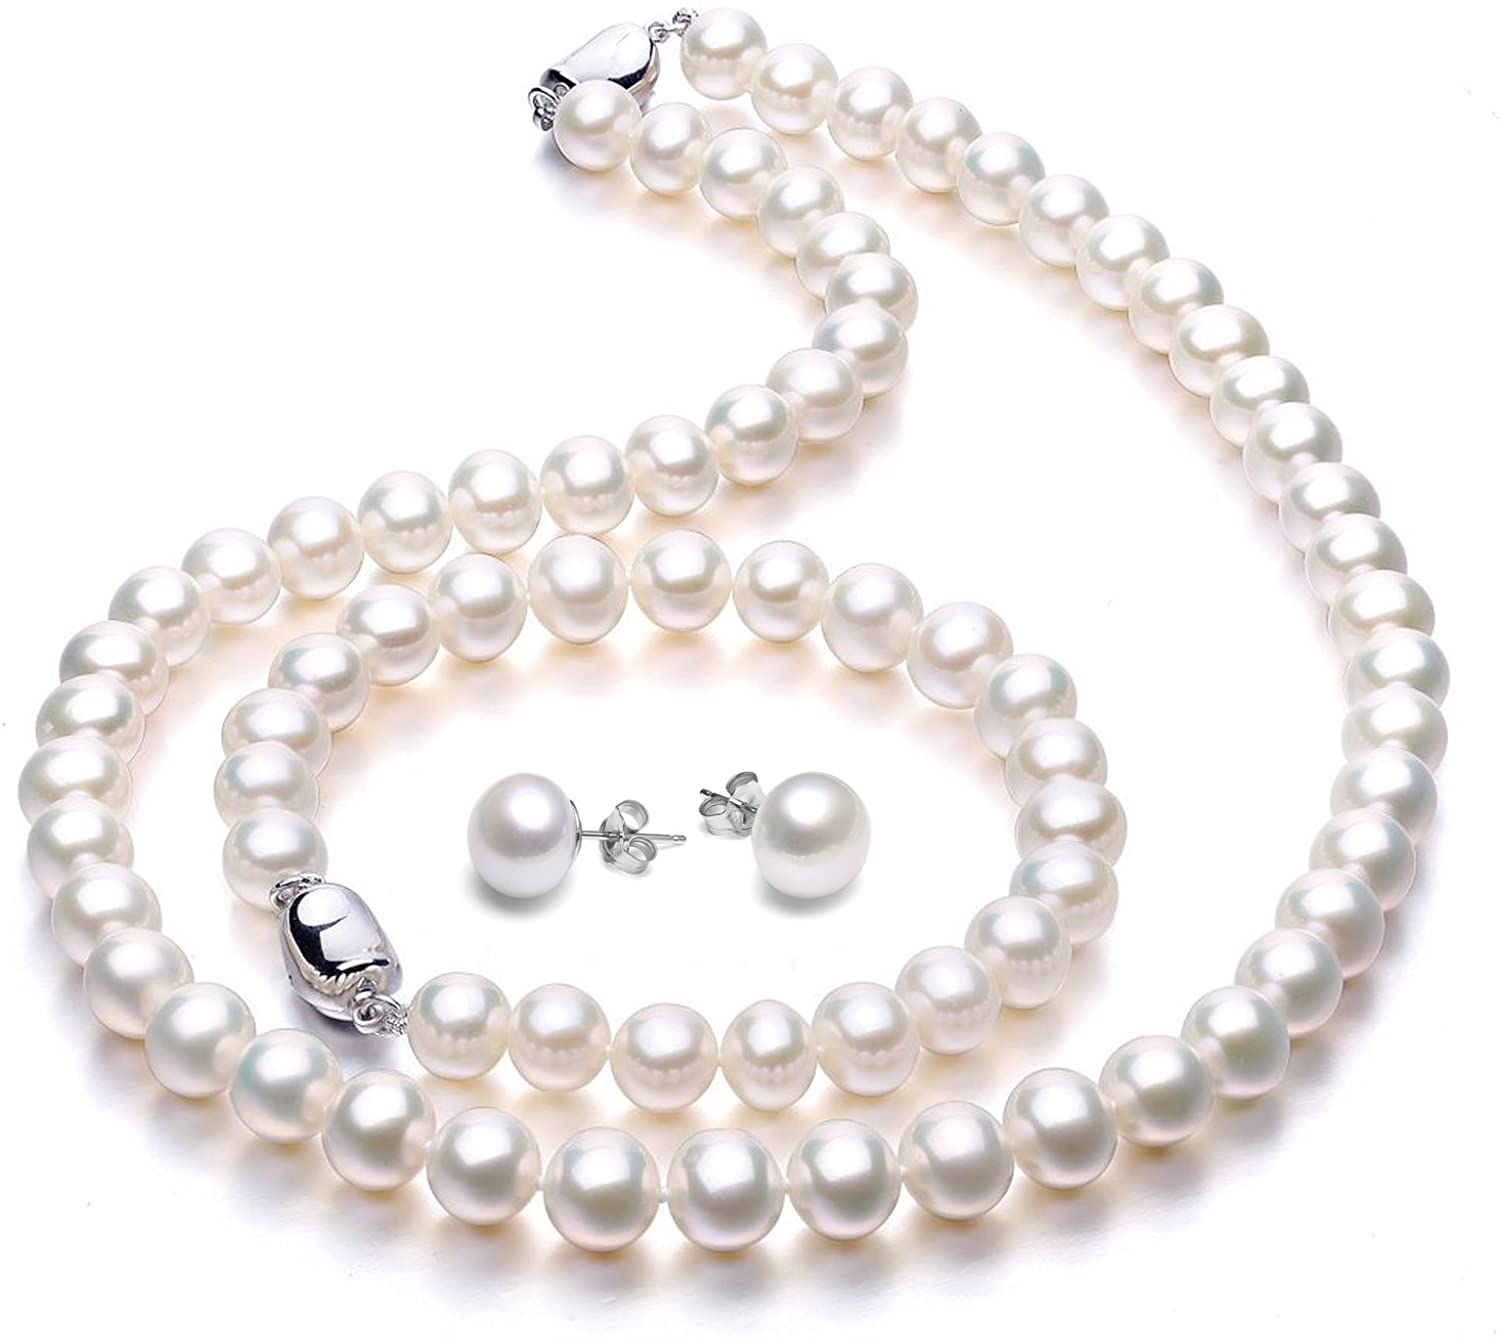 VIKI LYNN Freshwater Cultured Pearl Necklace Set